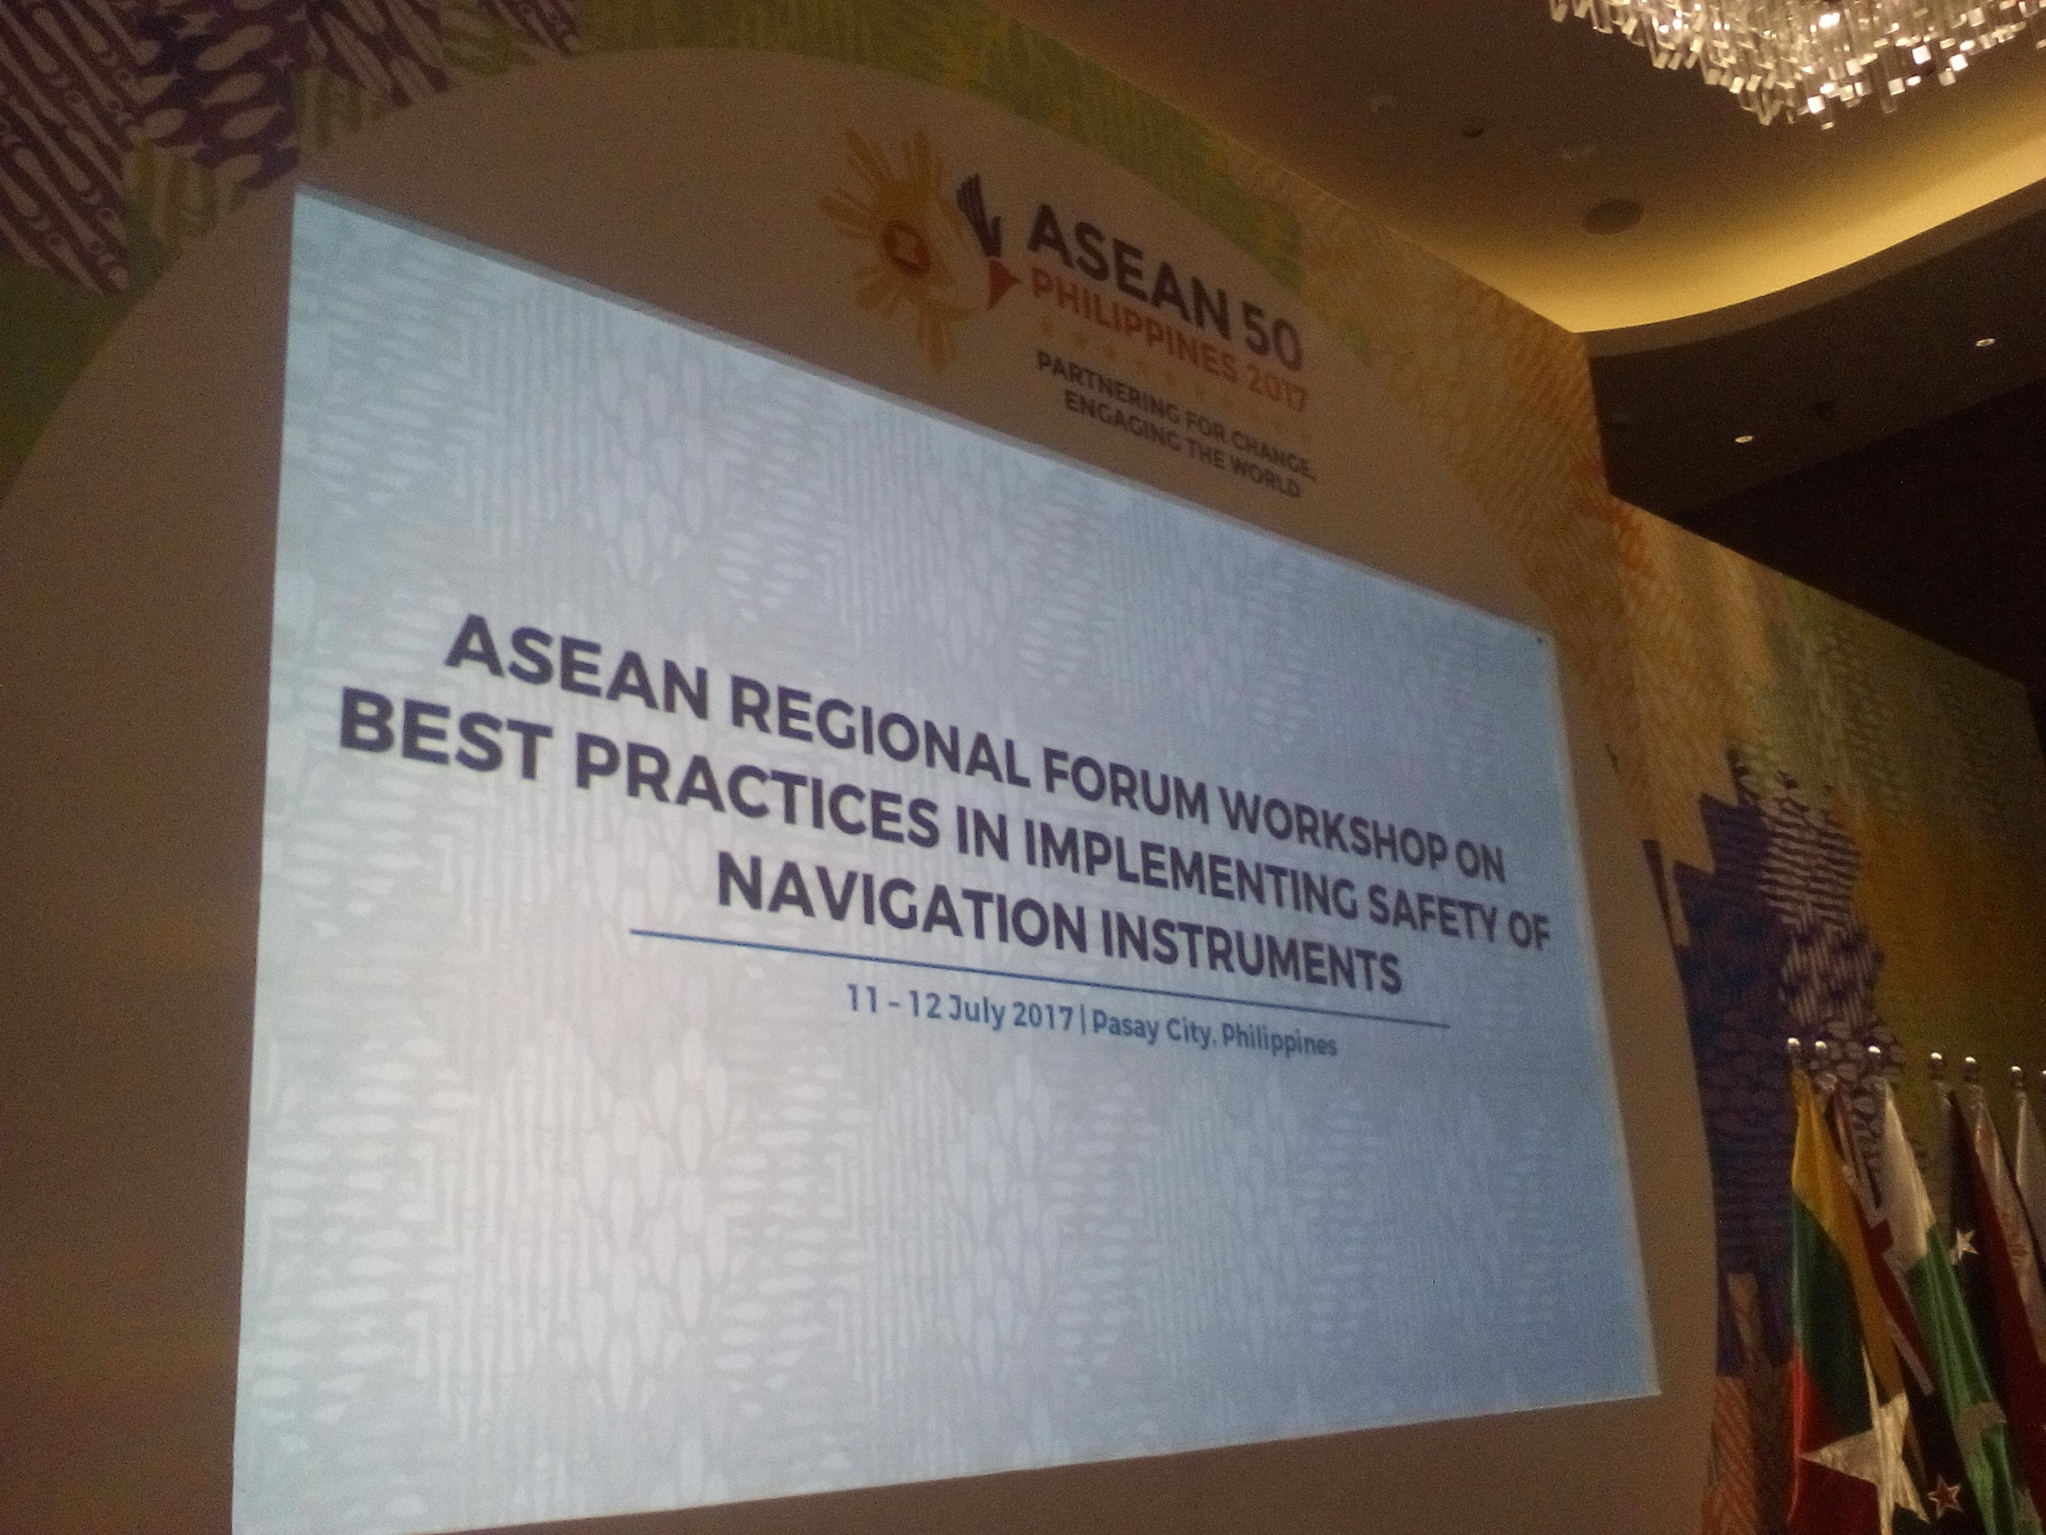 ASEAN Regional Forum Workshop on Best Practices in Implementing Safety of Navigation Instruments